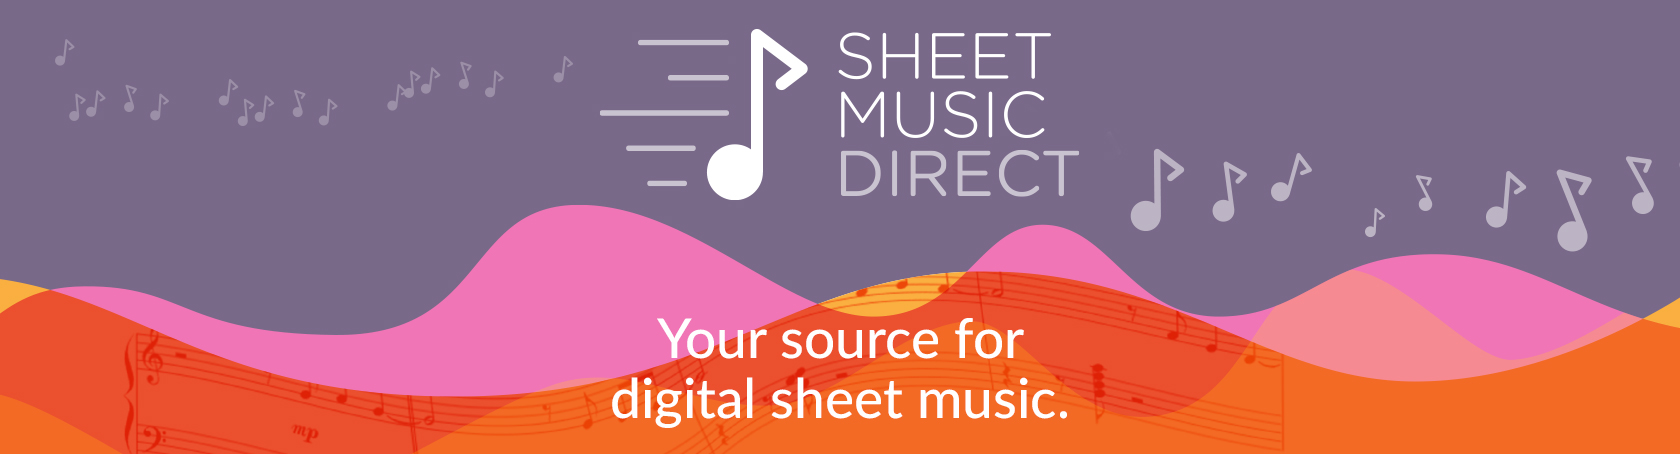 SMD - Sheet Music Direct - Your source for digital sheet music